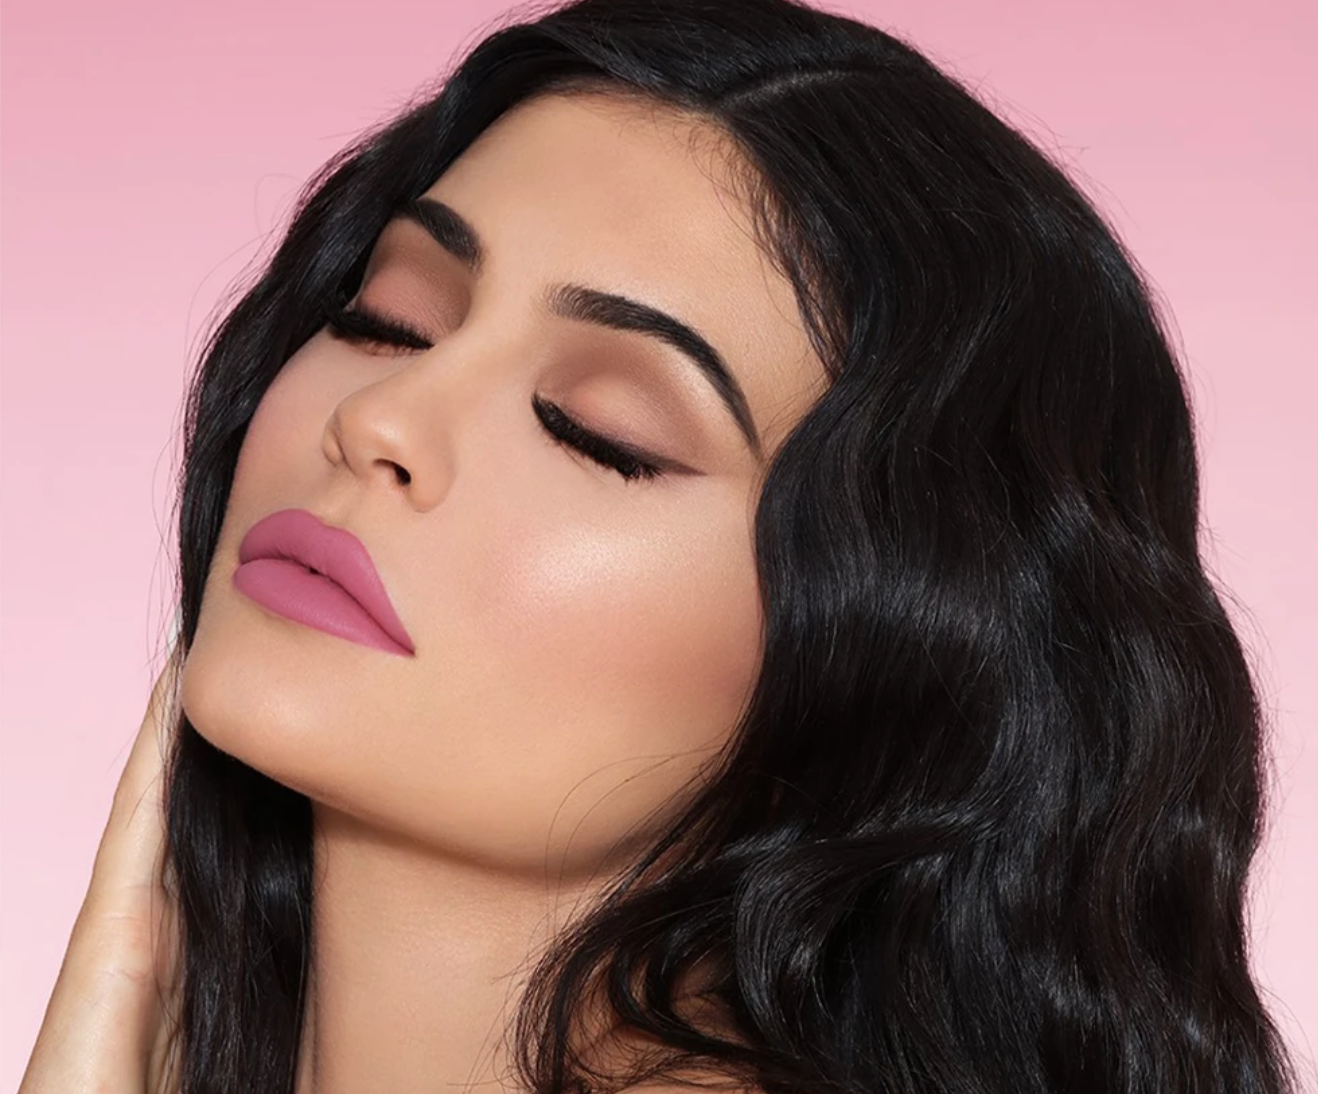 Kylie Jenner poses in an advertisement for Kylie Cosmetics.